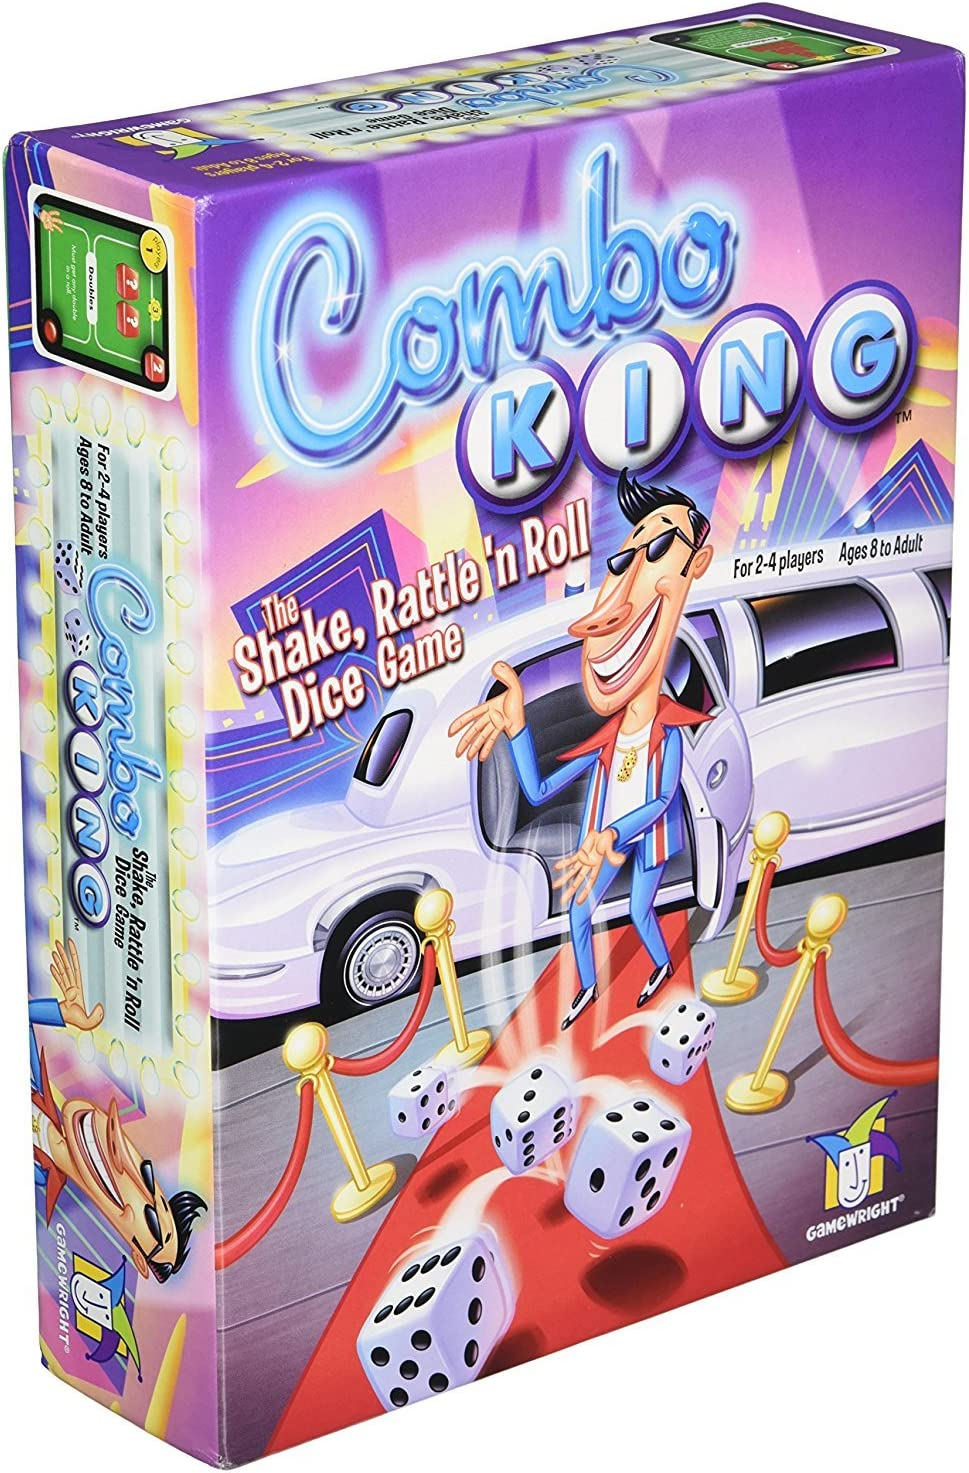 Gamewright Combo King, the Shake, Rattle 'n Roll Dice Game [並行輸入品]